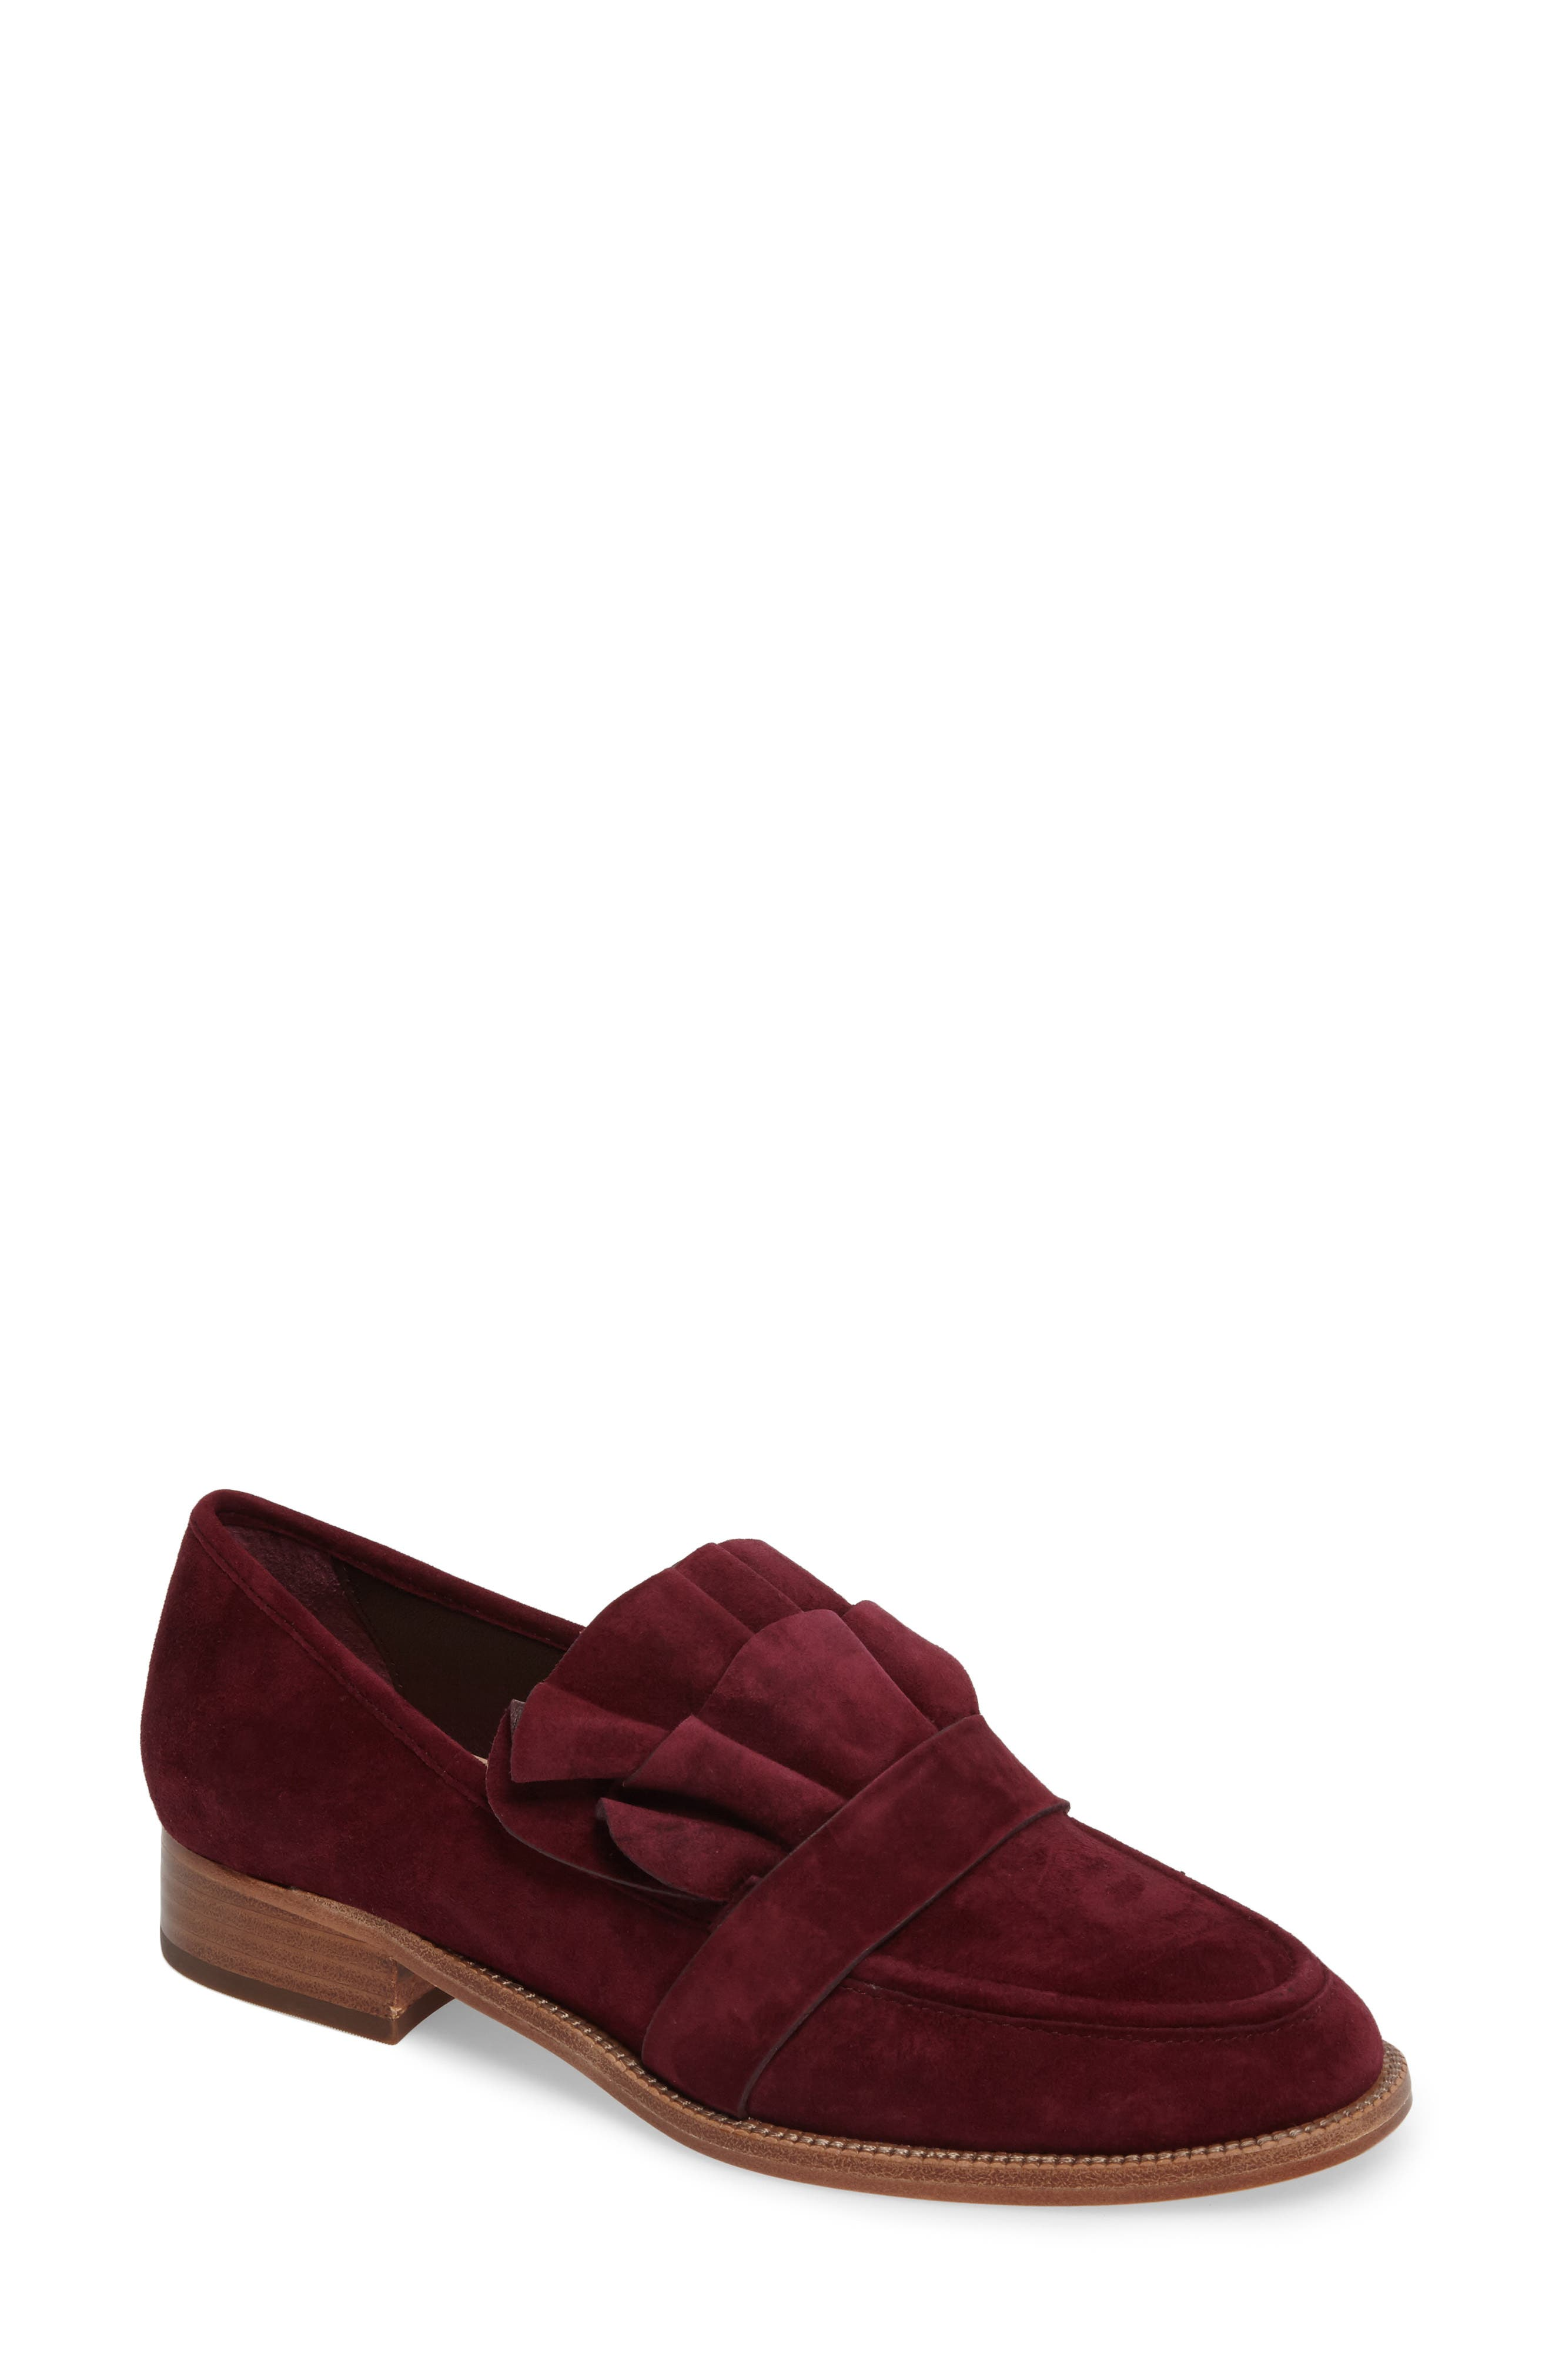 Tenley Ruffled Loafer,                         Main,                         color, 930